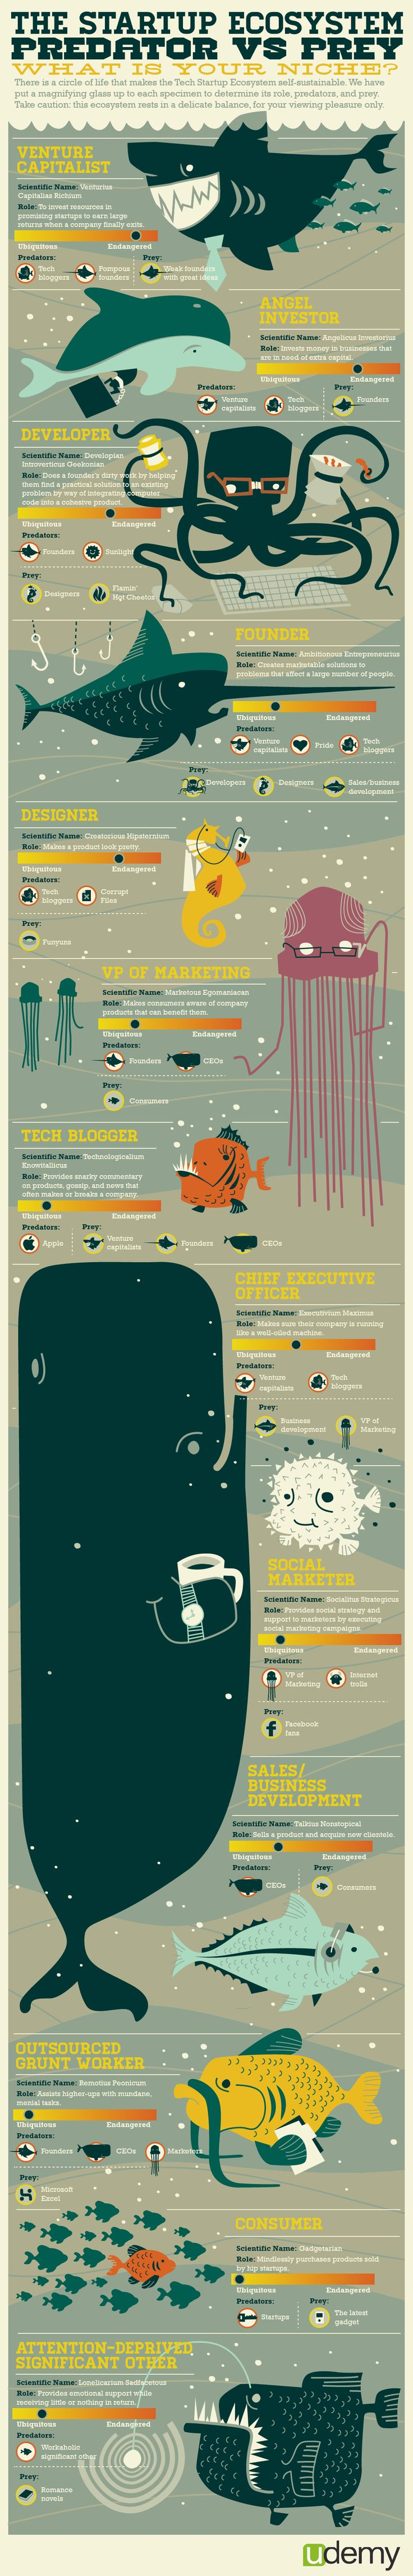 The Startup Ecosystem Predator Vs. Prey.: Ecosystems Infographics, Startups Ecosystems, Predator, Sea Creatures, Food Chains, Data Visual, Startupecosystem, Info Graphics, Design